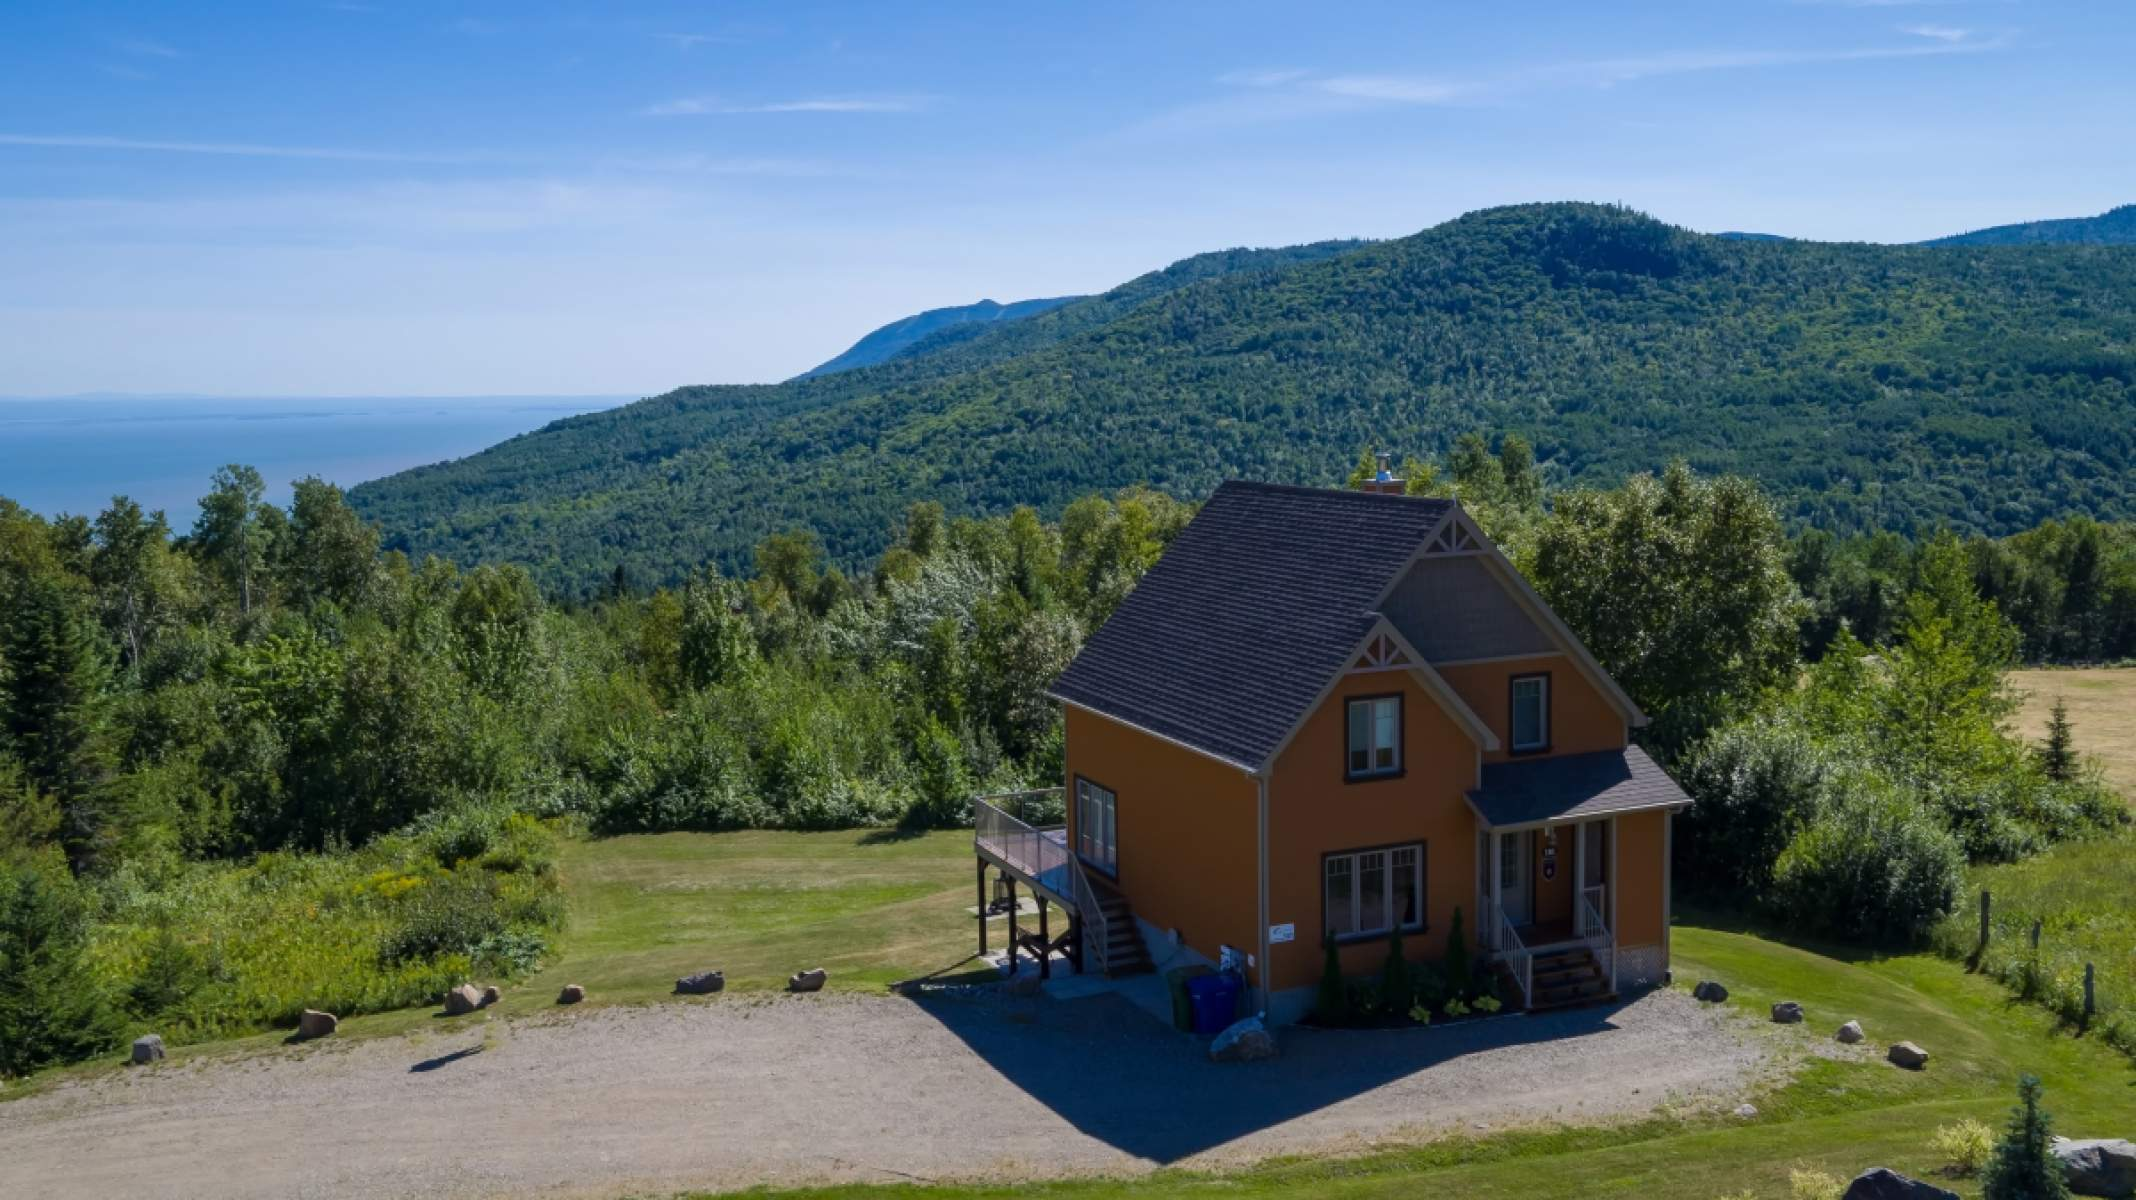 en chalets rental cottages renting le condo huppe area living rentals charlevoix cottage hupp in